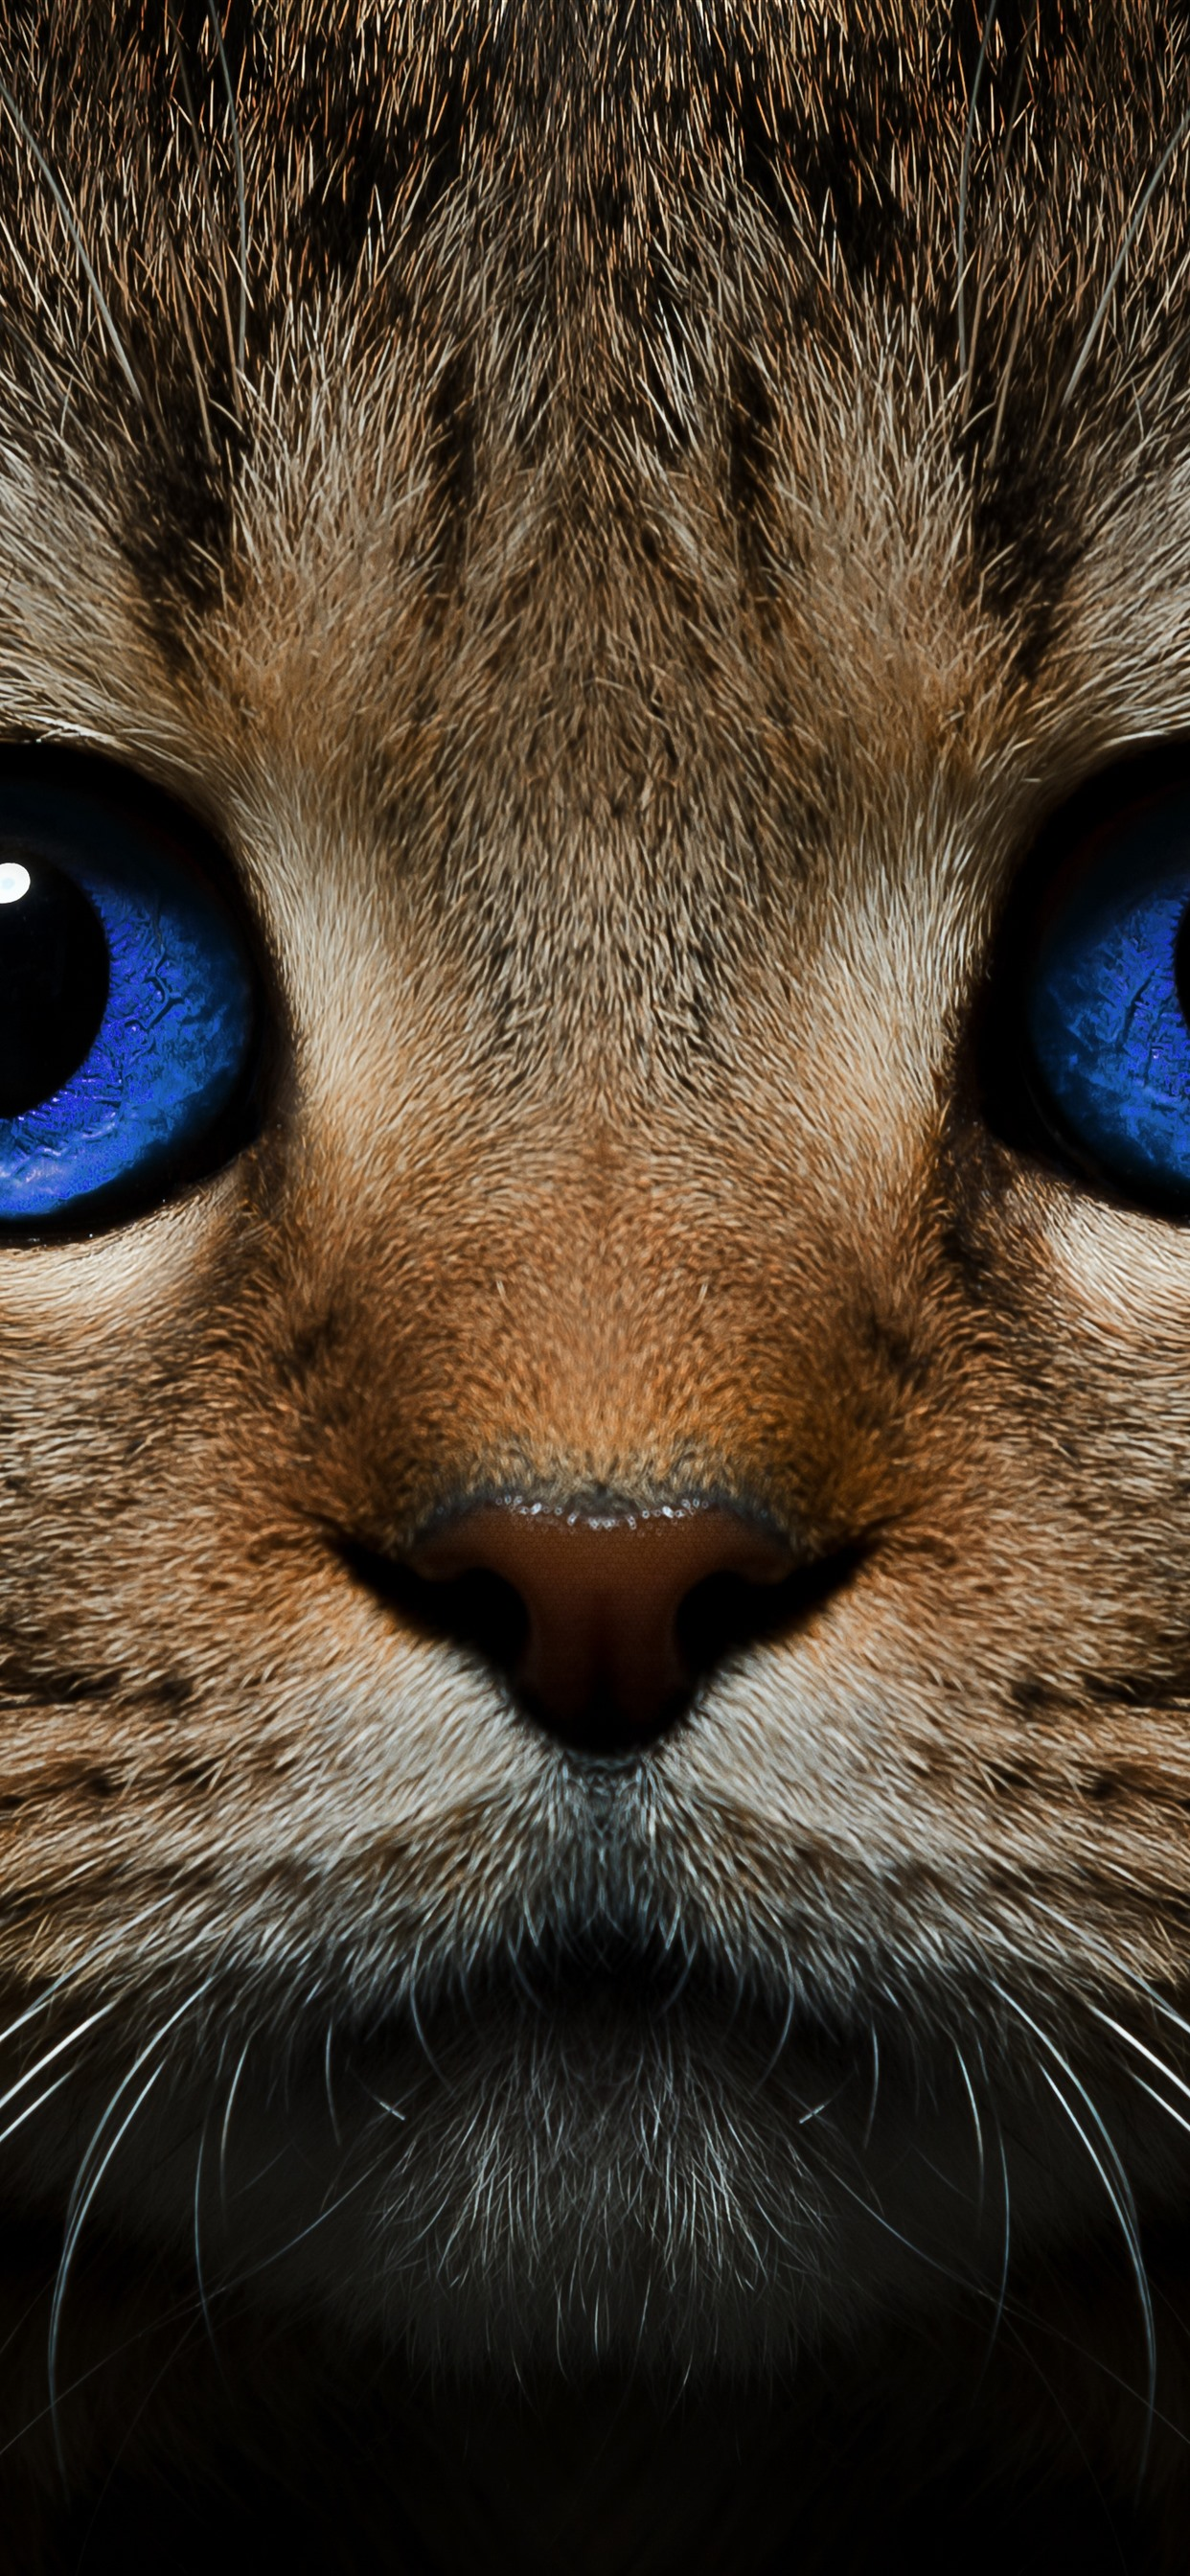 Blue Eyes Cat Front View Face 1242x2688 Iphone Xs Max